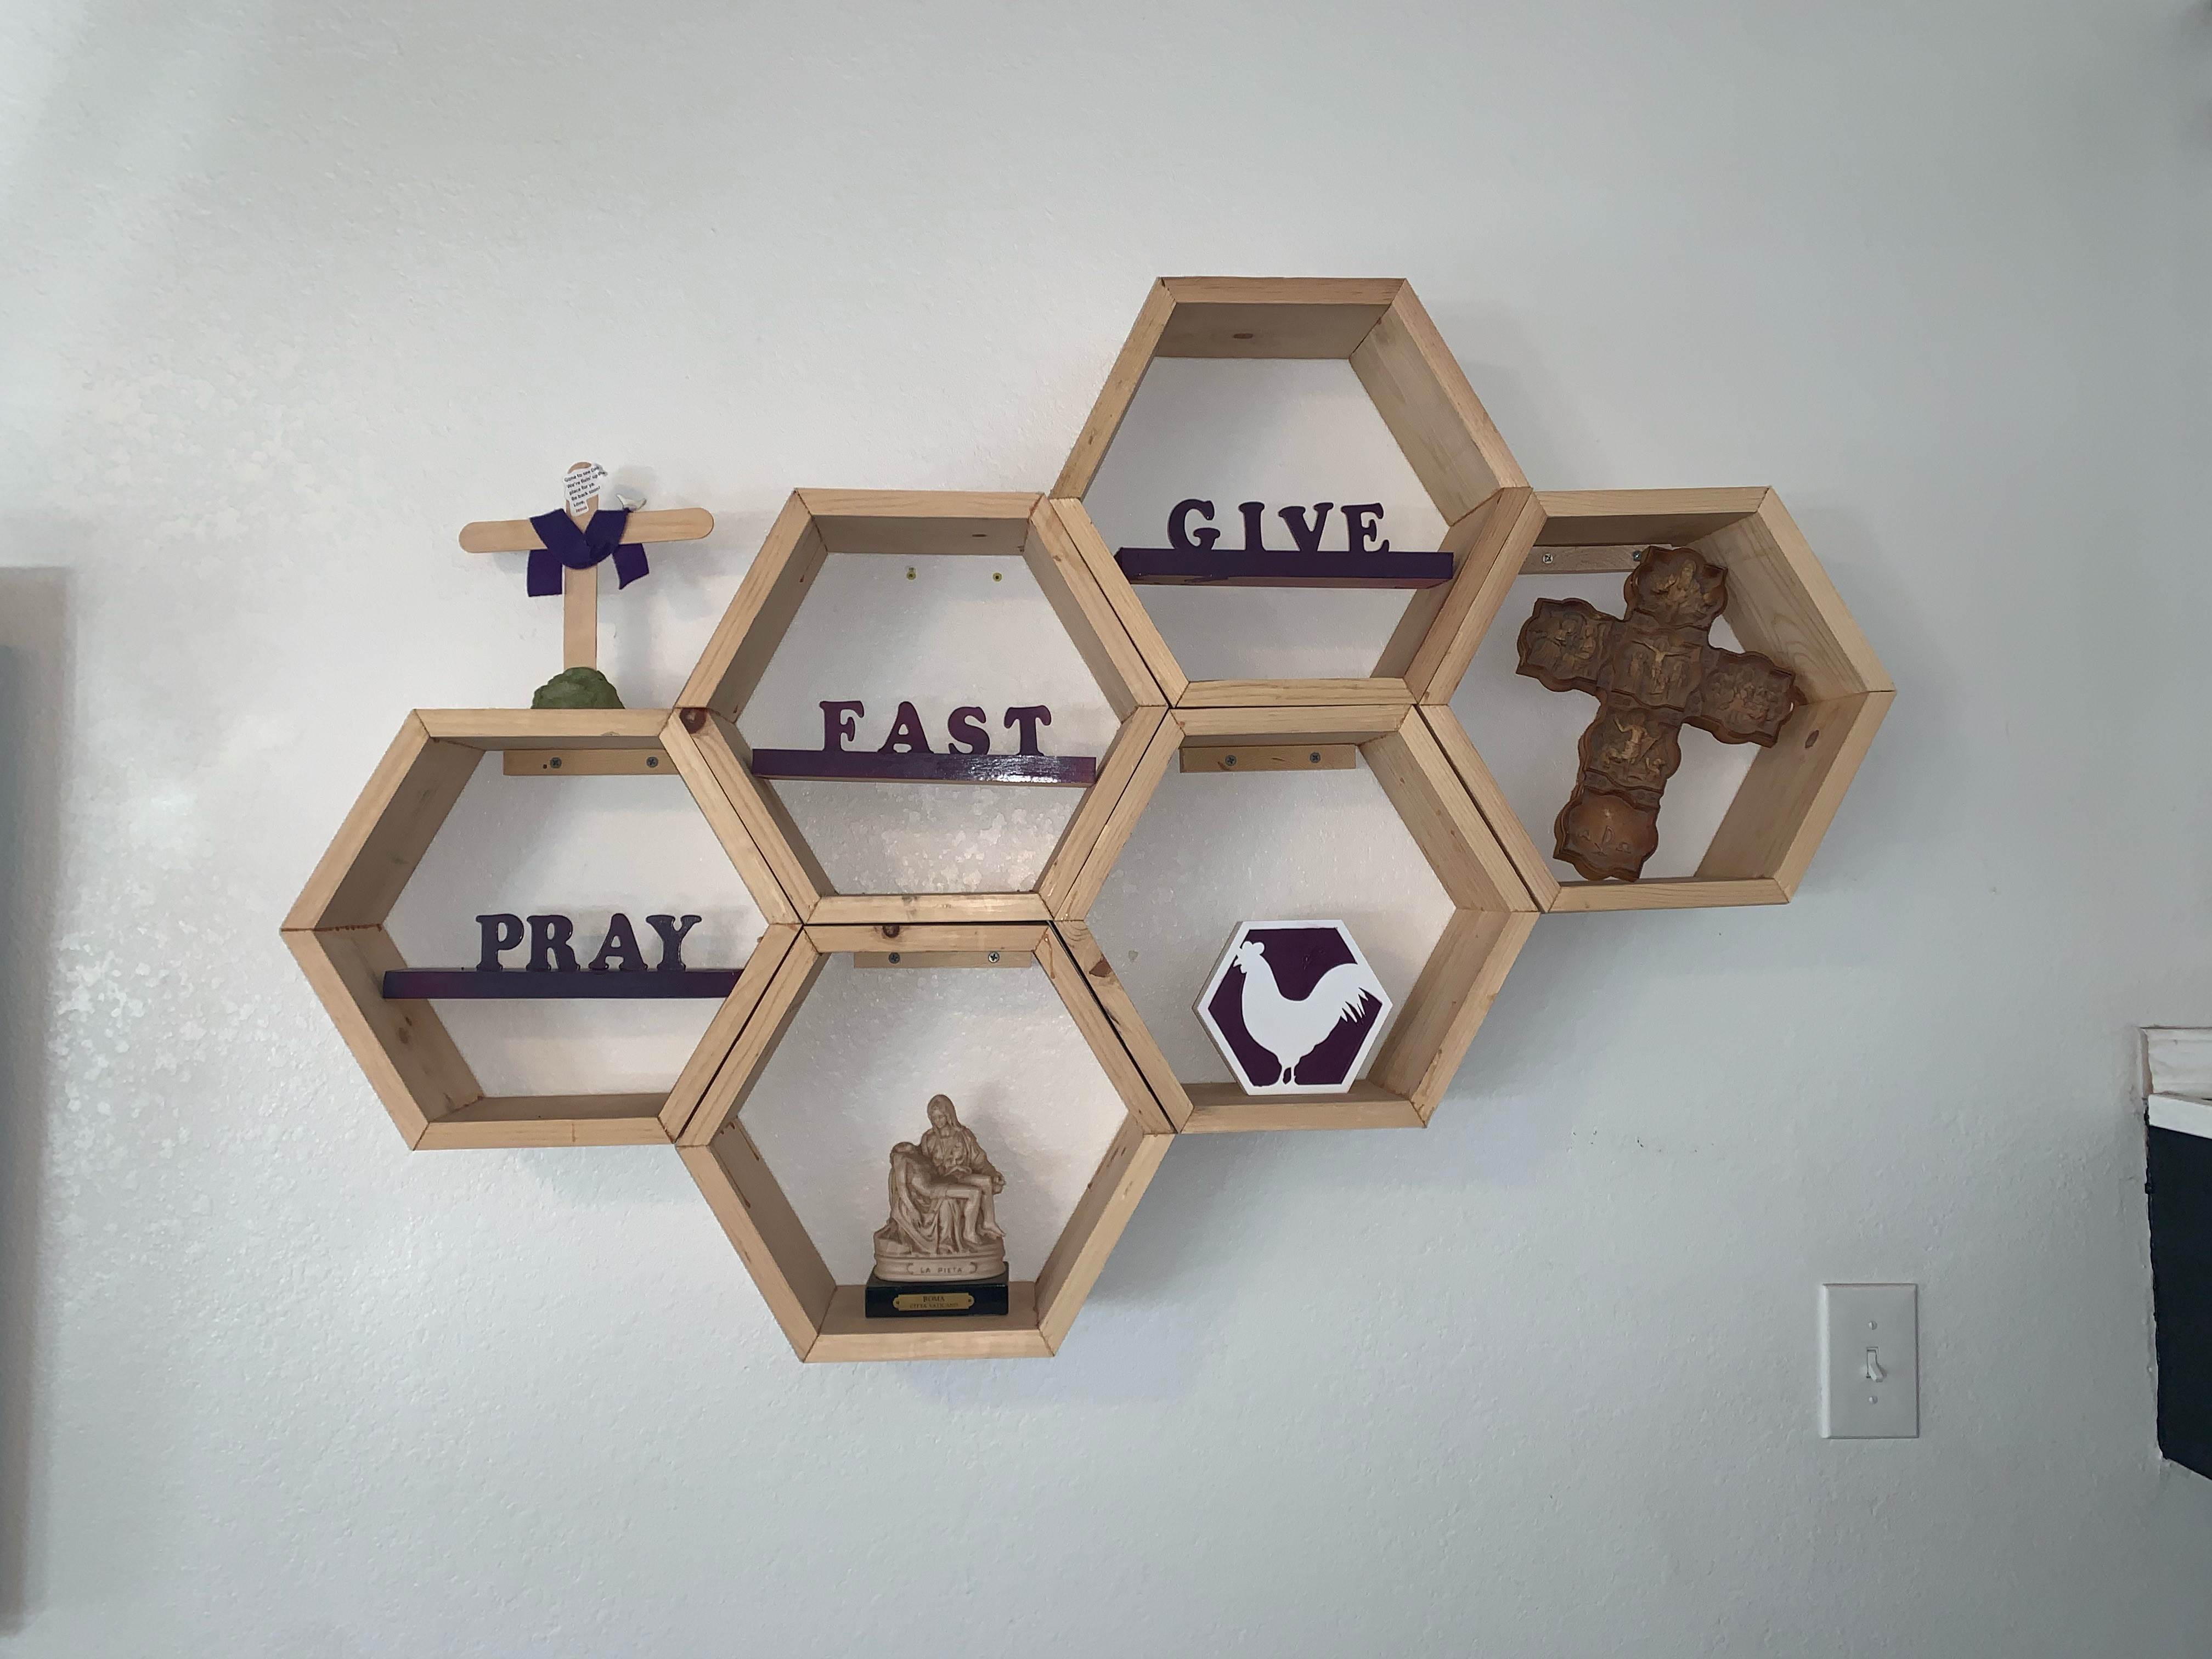 Lent wooden honeycomb boxes with pray fast give words and related objects